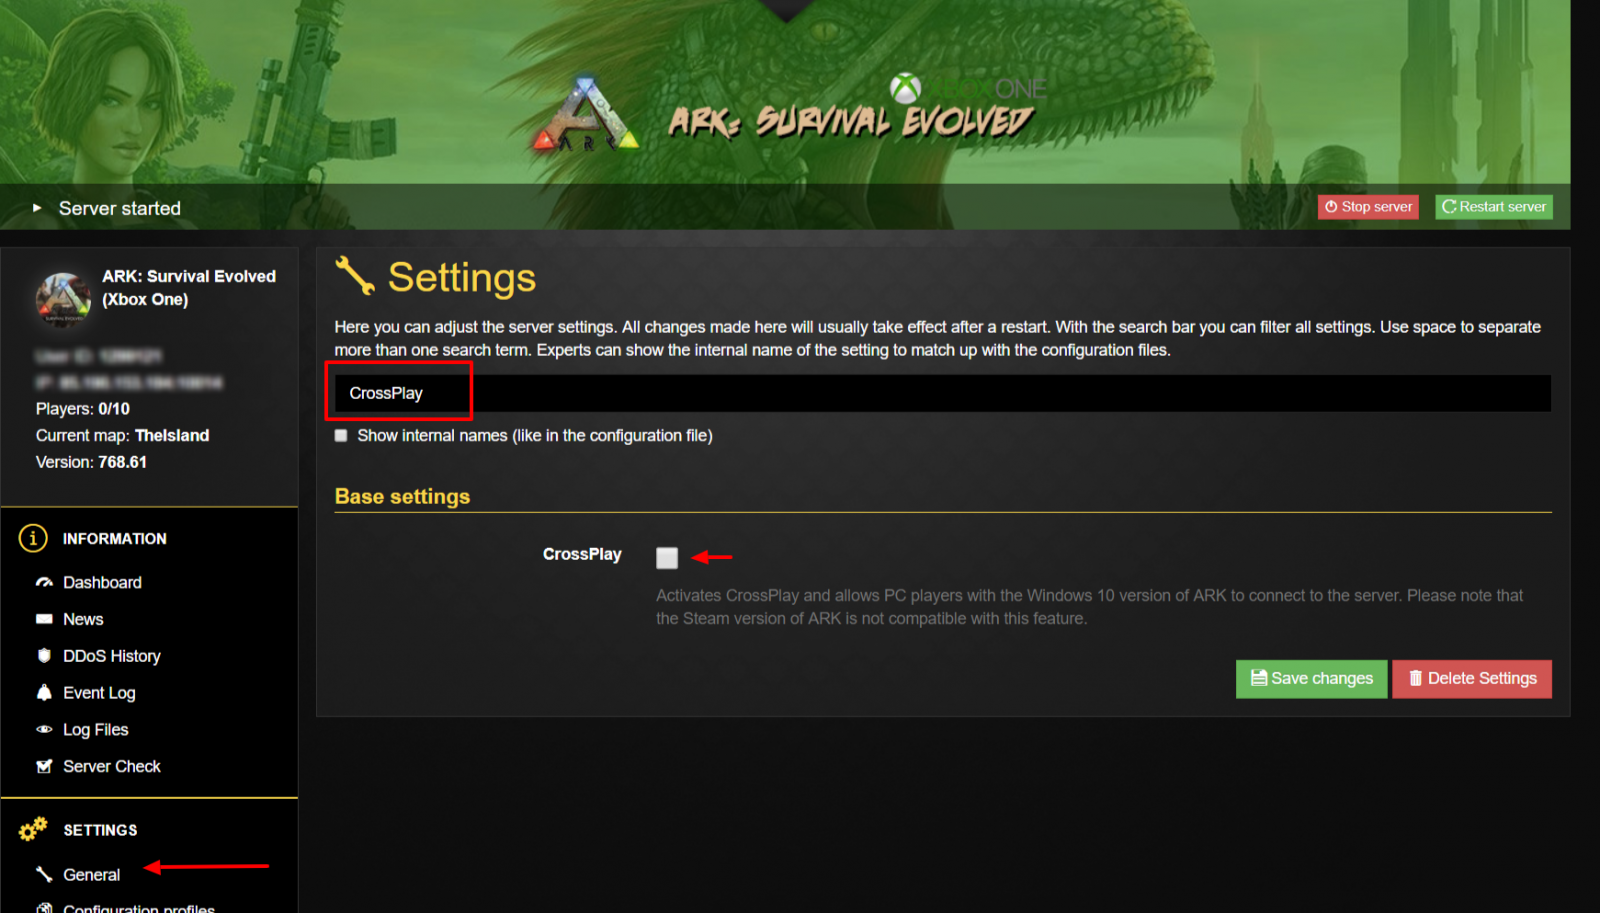 Ark Survival Evolved Available Now On Windows 10 With Crossplay Minecraft Edition Original Serial Code Largearkxb Option Notation The Launch Of Version